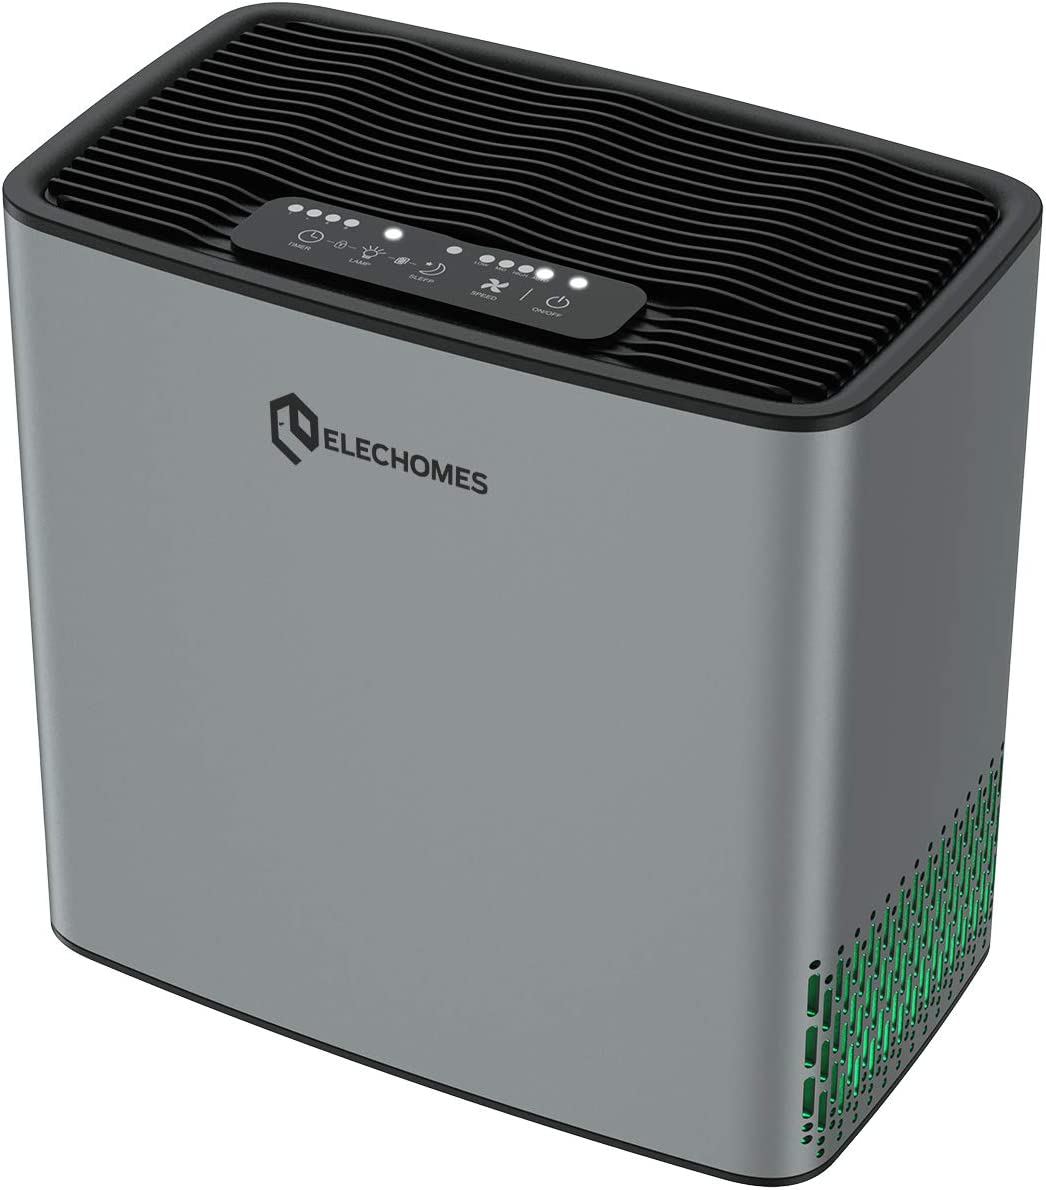 Elechomes P1801 Air Purifier for Dust Pollen Pets Hair Allergies Smokers, H13 True HEPA Filter, Auto Mode, Air Quality Sensor, 269ft², Desktop Air Purifier for Home, Bedroom, Living Room.